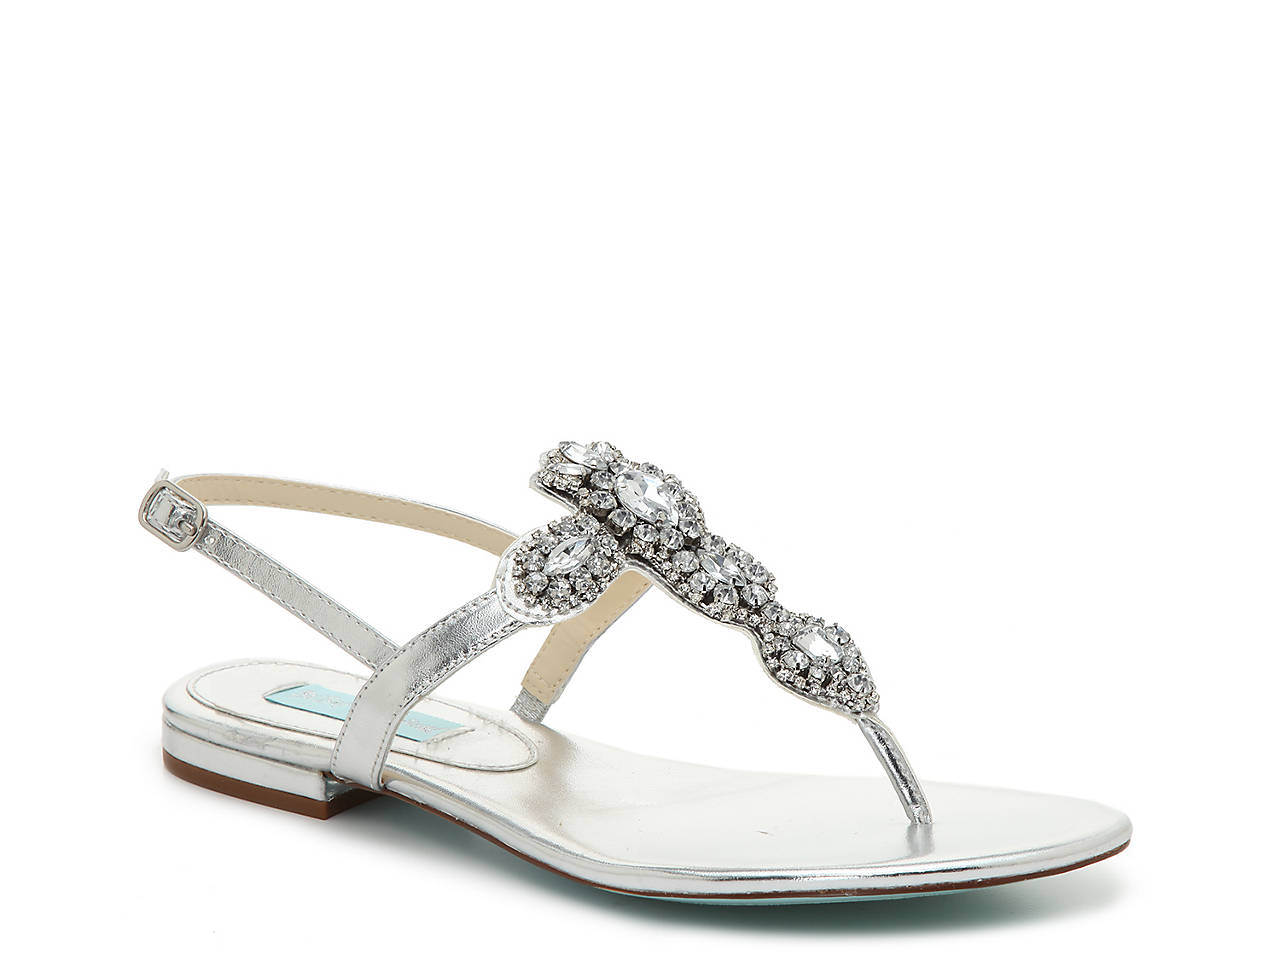 visit new Betsey Johnson Metallic Leather Sandals free shipping amazon clearance many kinds of sS1qCBi7